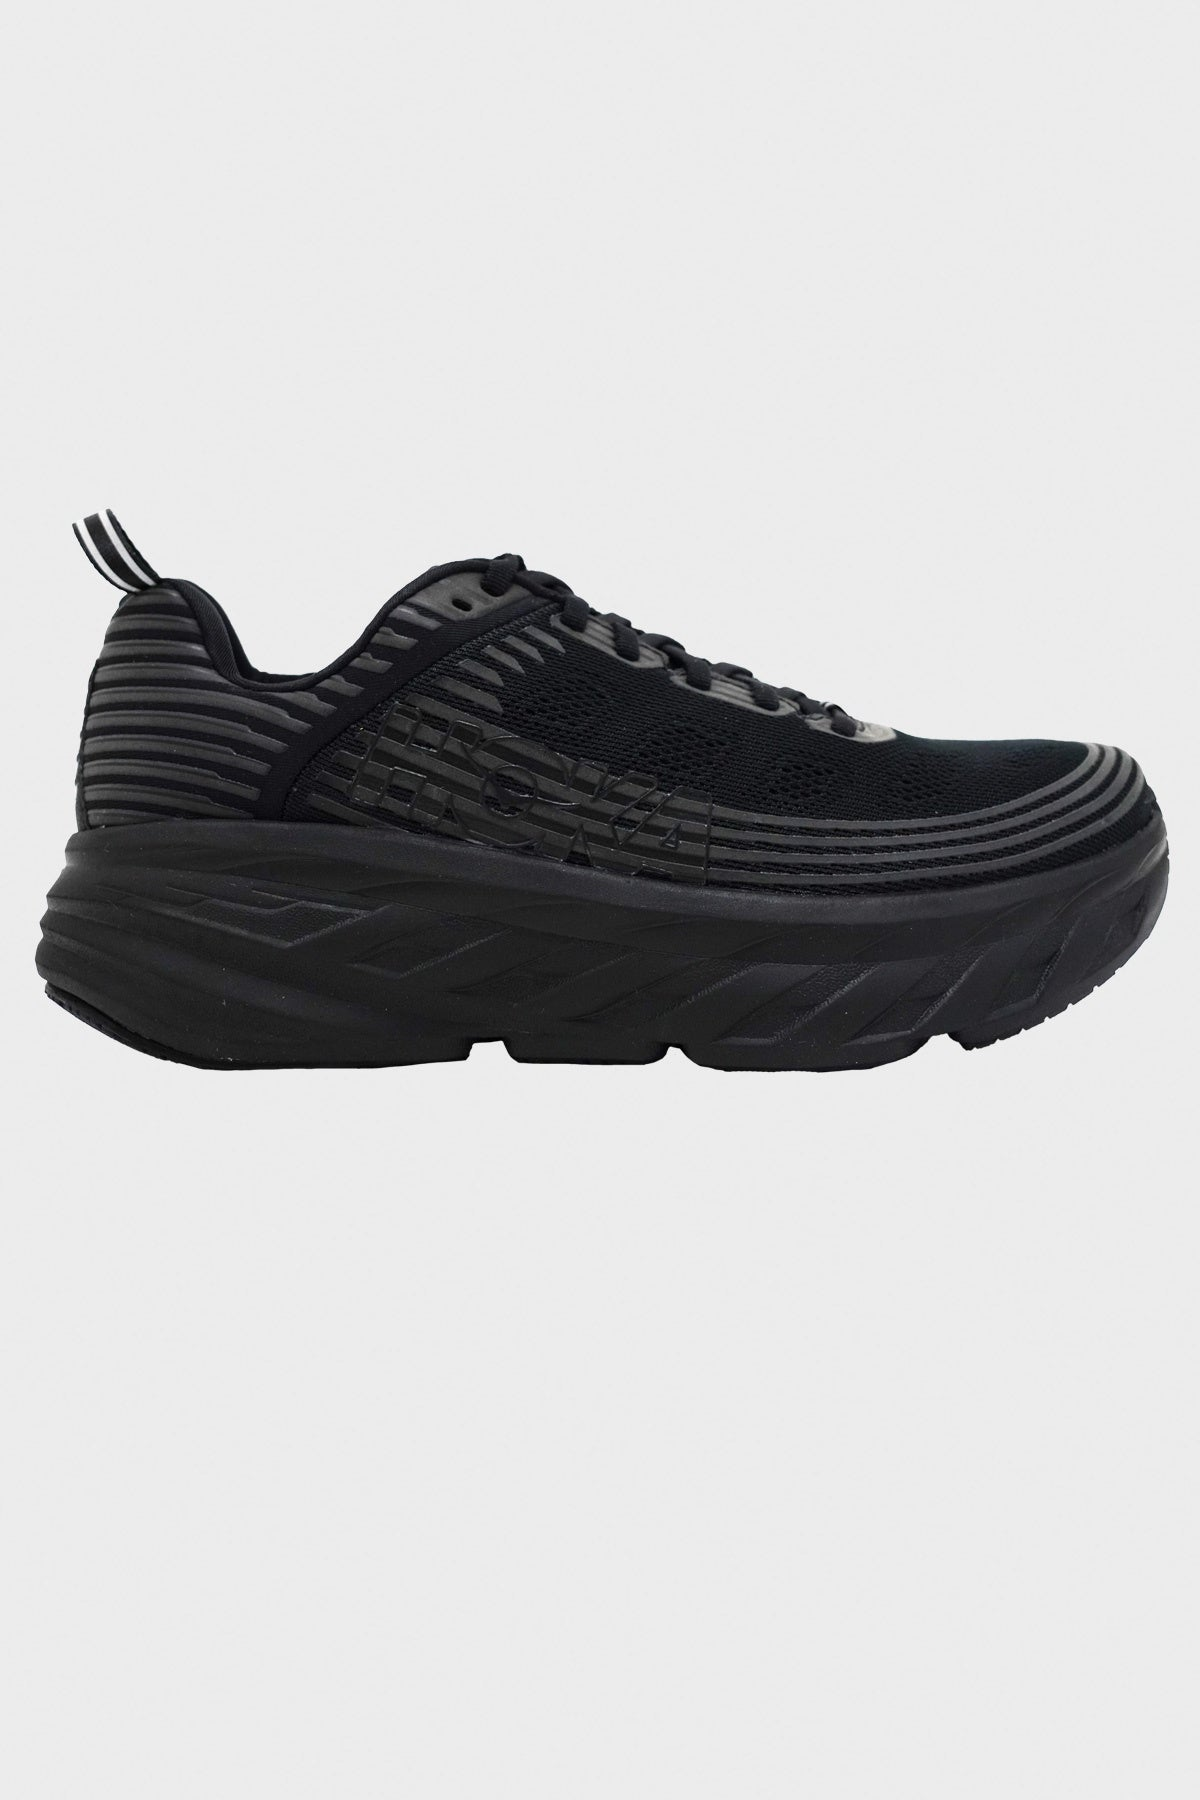 hoka one one Bondi 6 shoes - Black